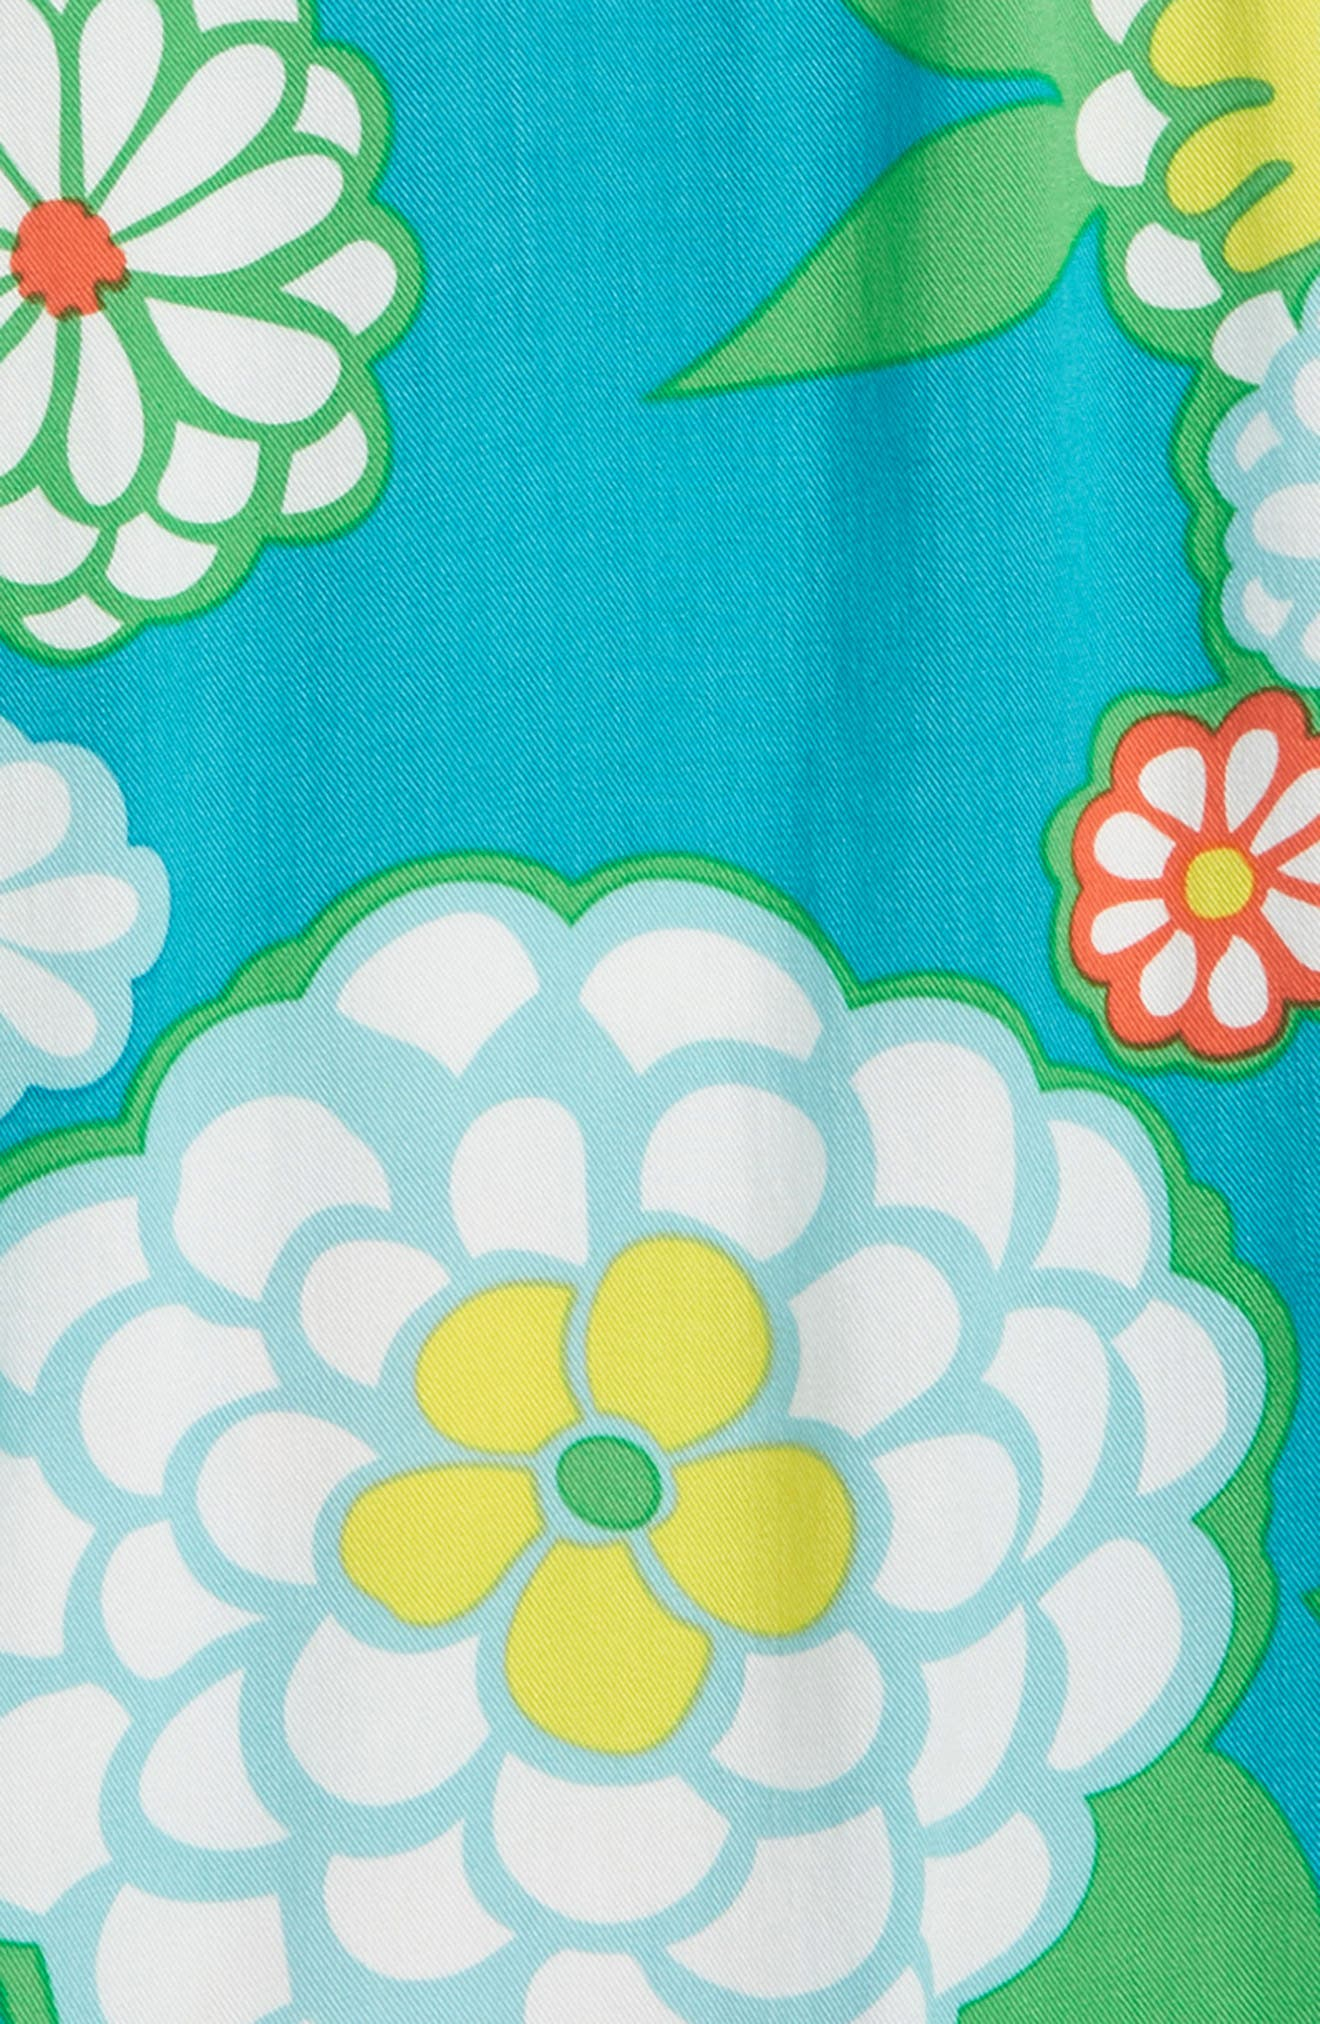 Print Culotte Romper,                             Alternate thumbnail 2, color,                             Ultramarine Green Daisy Grn